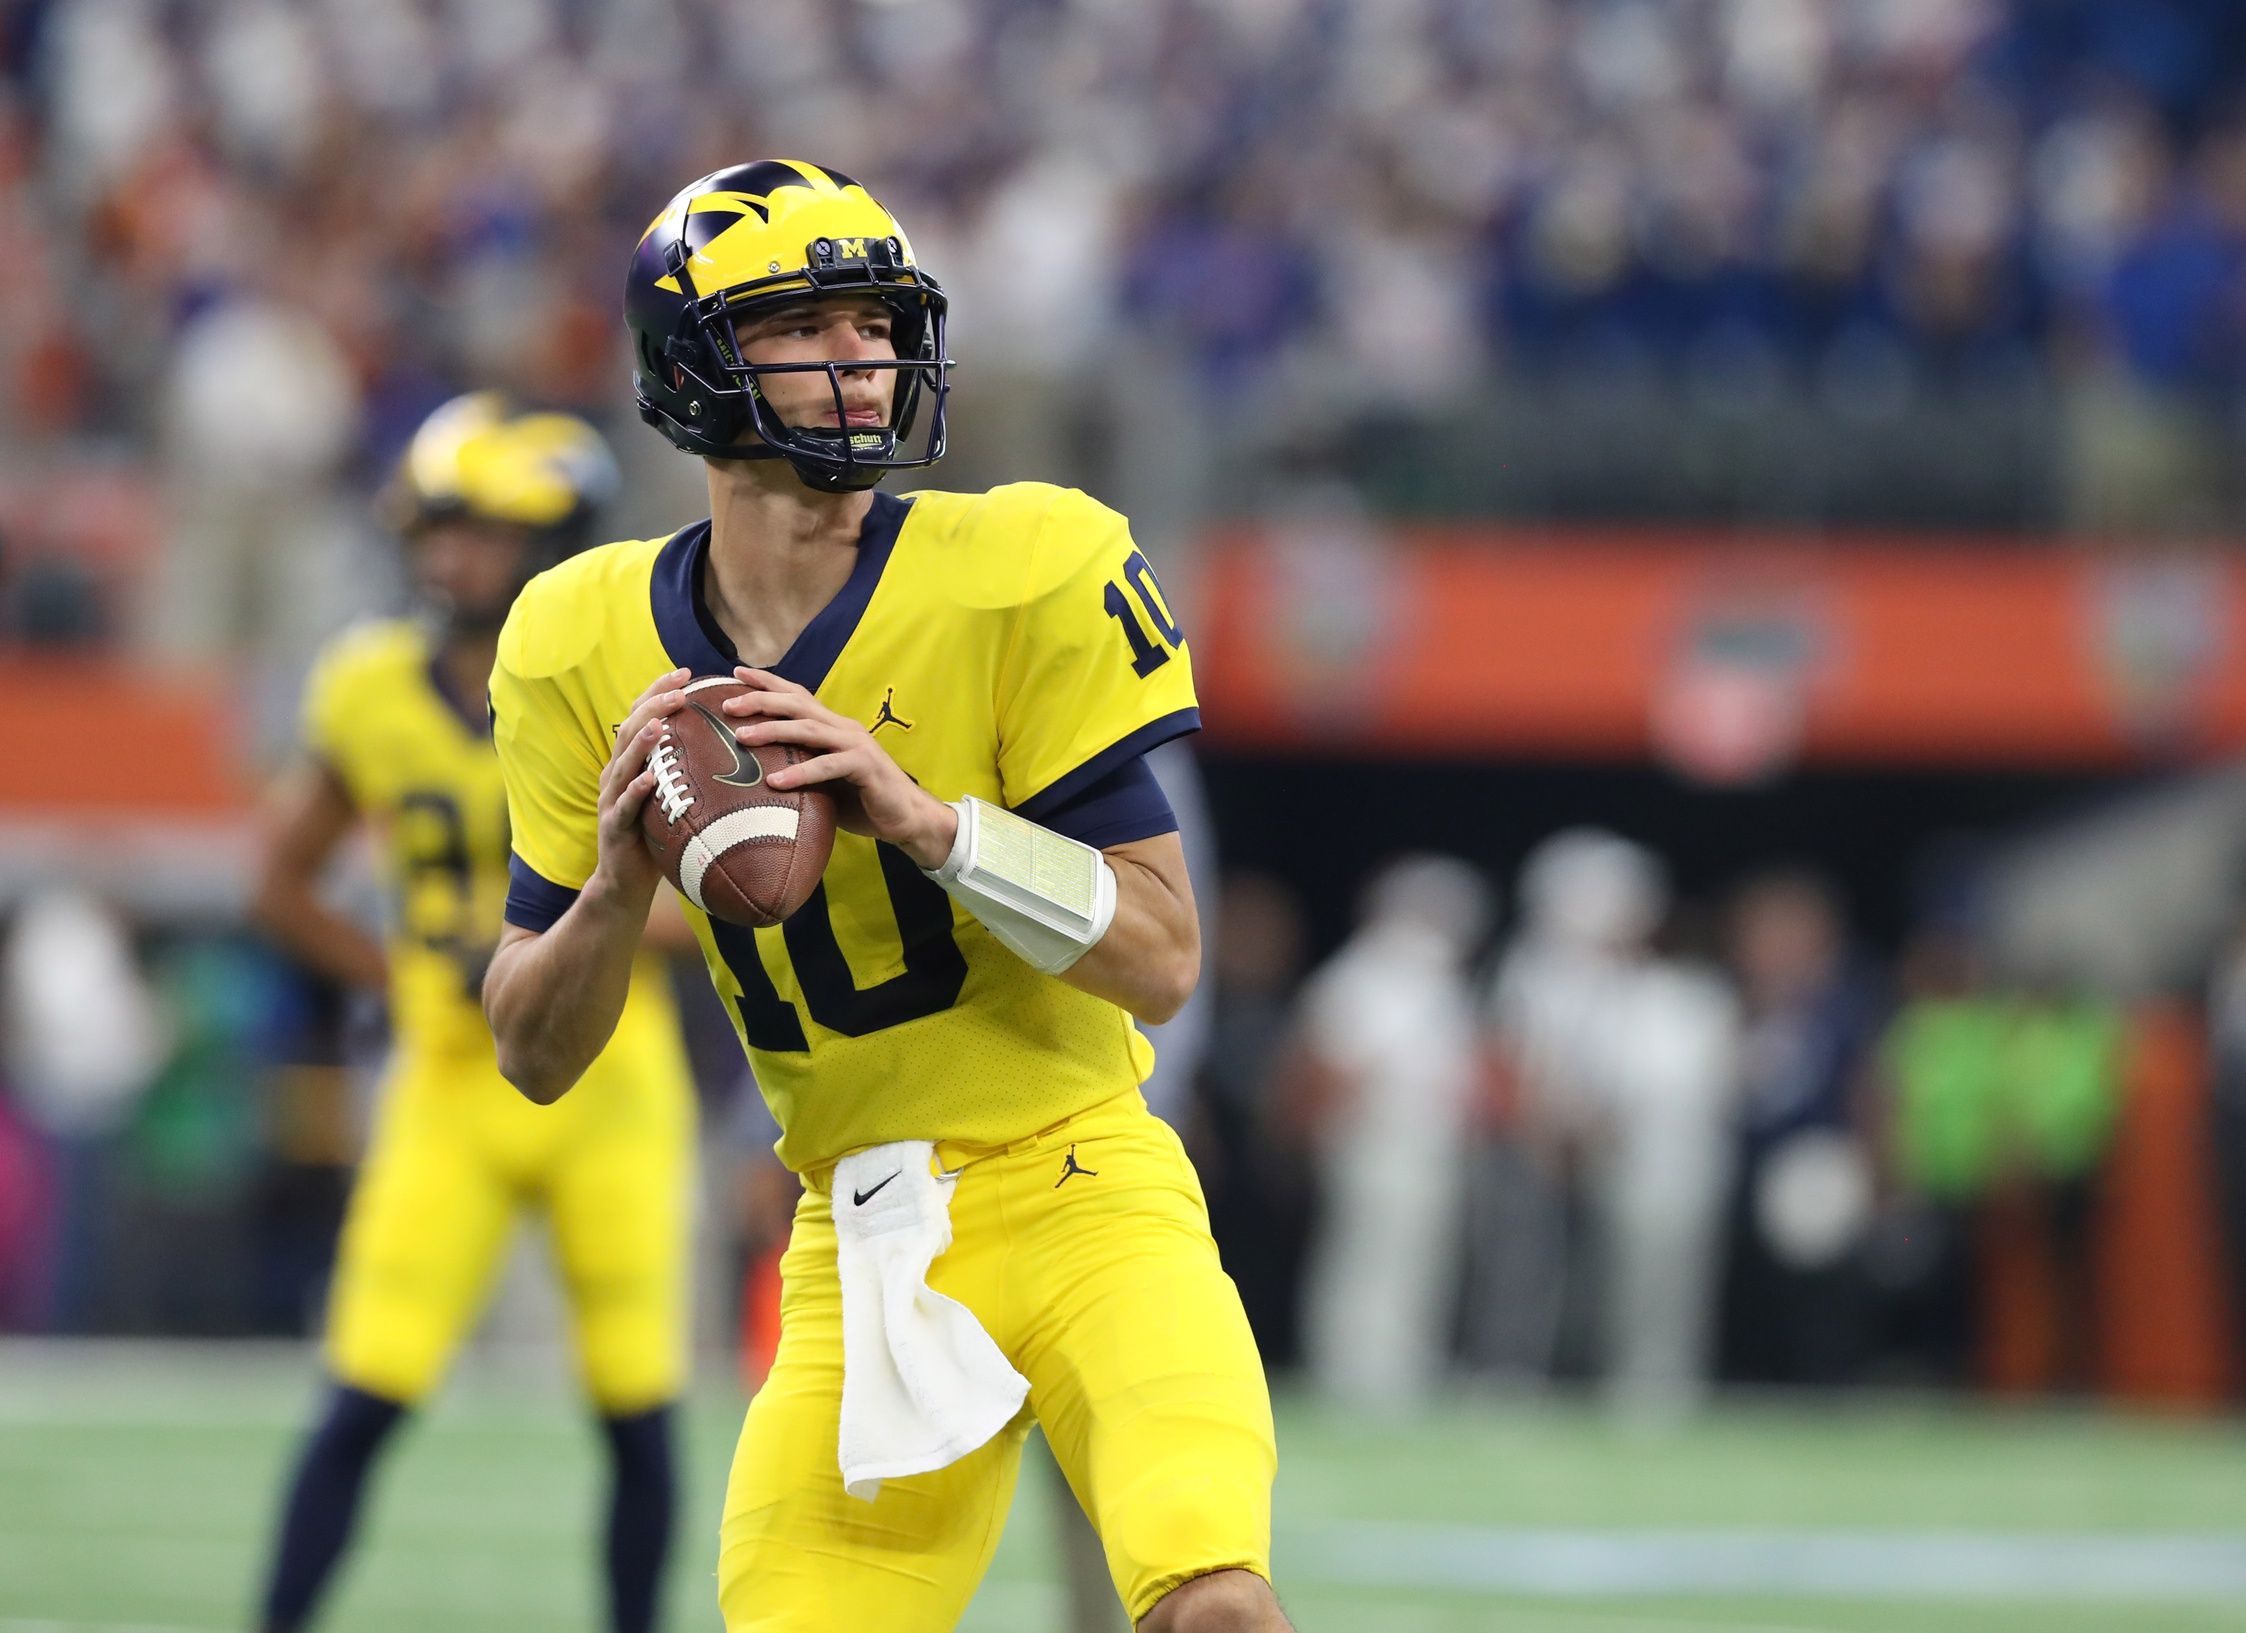 History Says Michigan Must Get Elite QB Play To Reach Its Potential